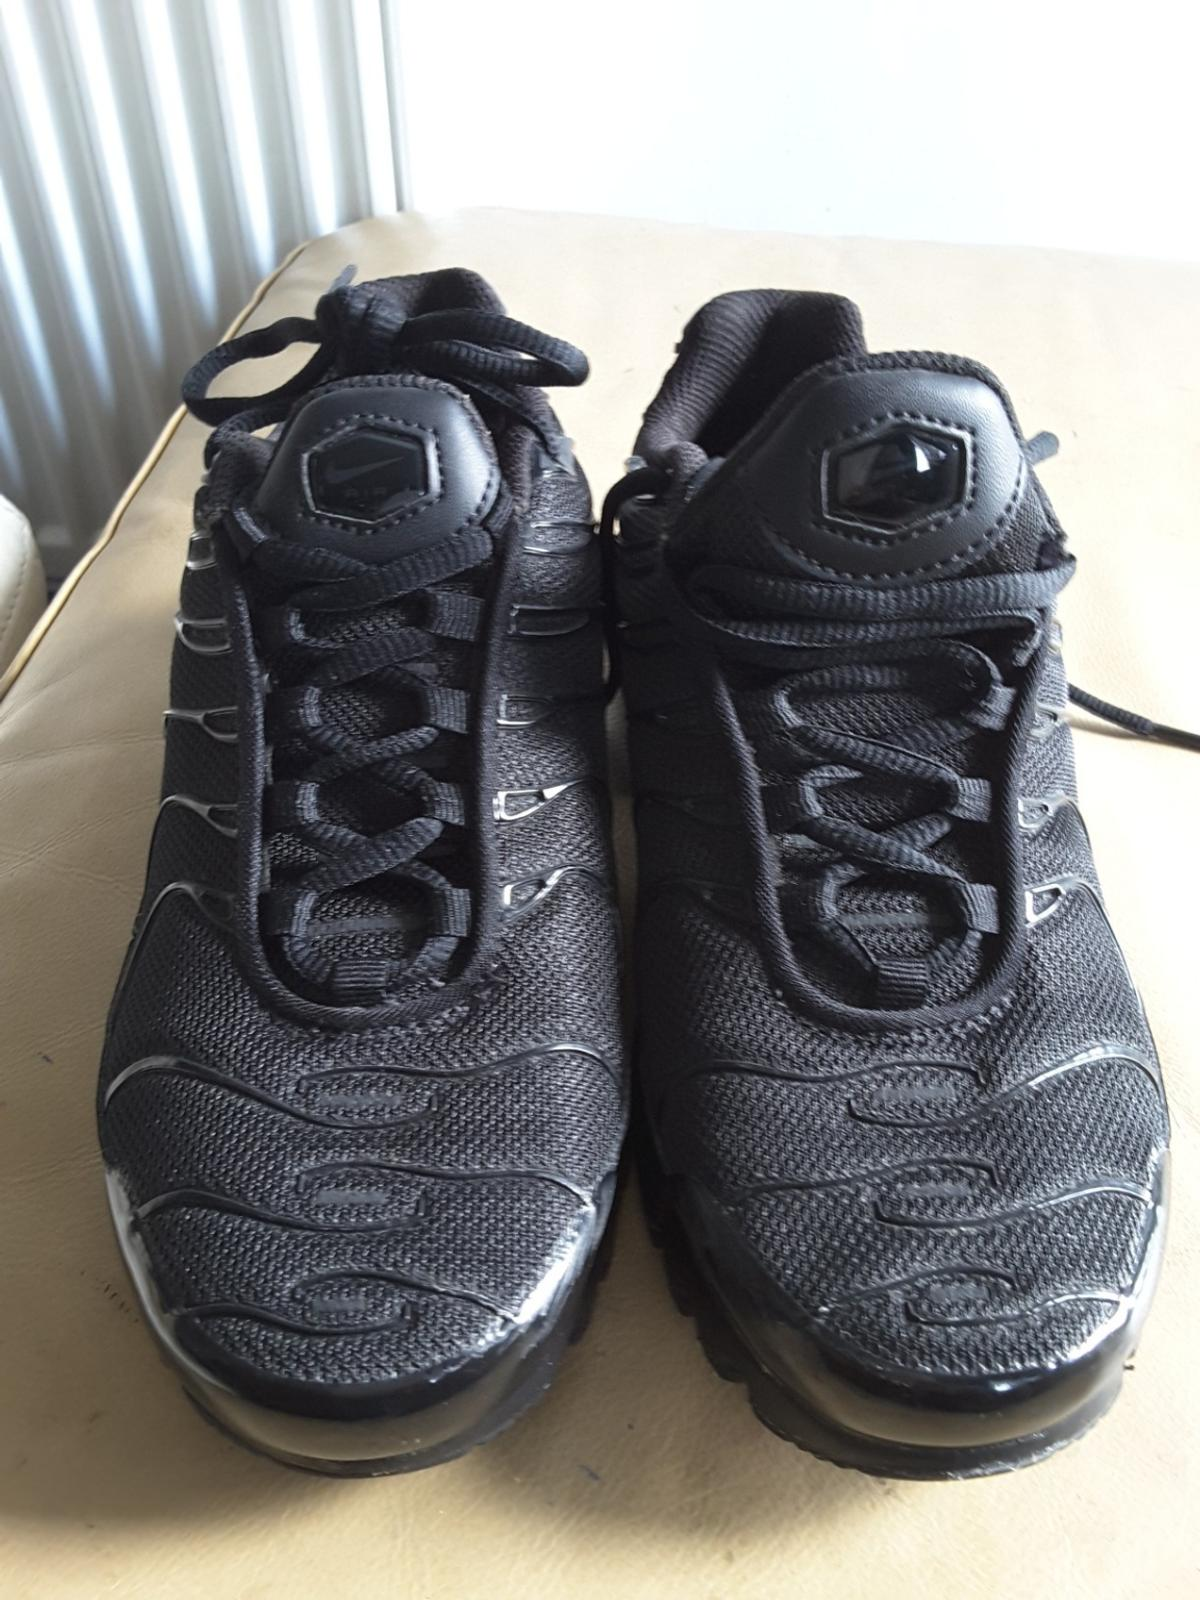 wholesale dealer a99bf 1e52f WOMENS NIKE AIR MAX TN BLACK TRAINERS UK 4.5 in SW9 London ...